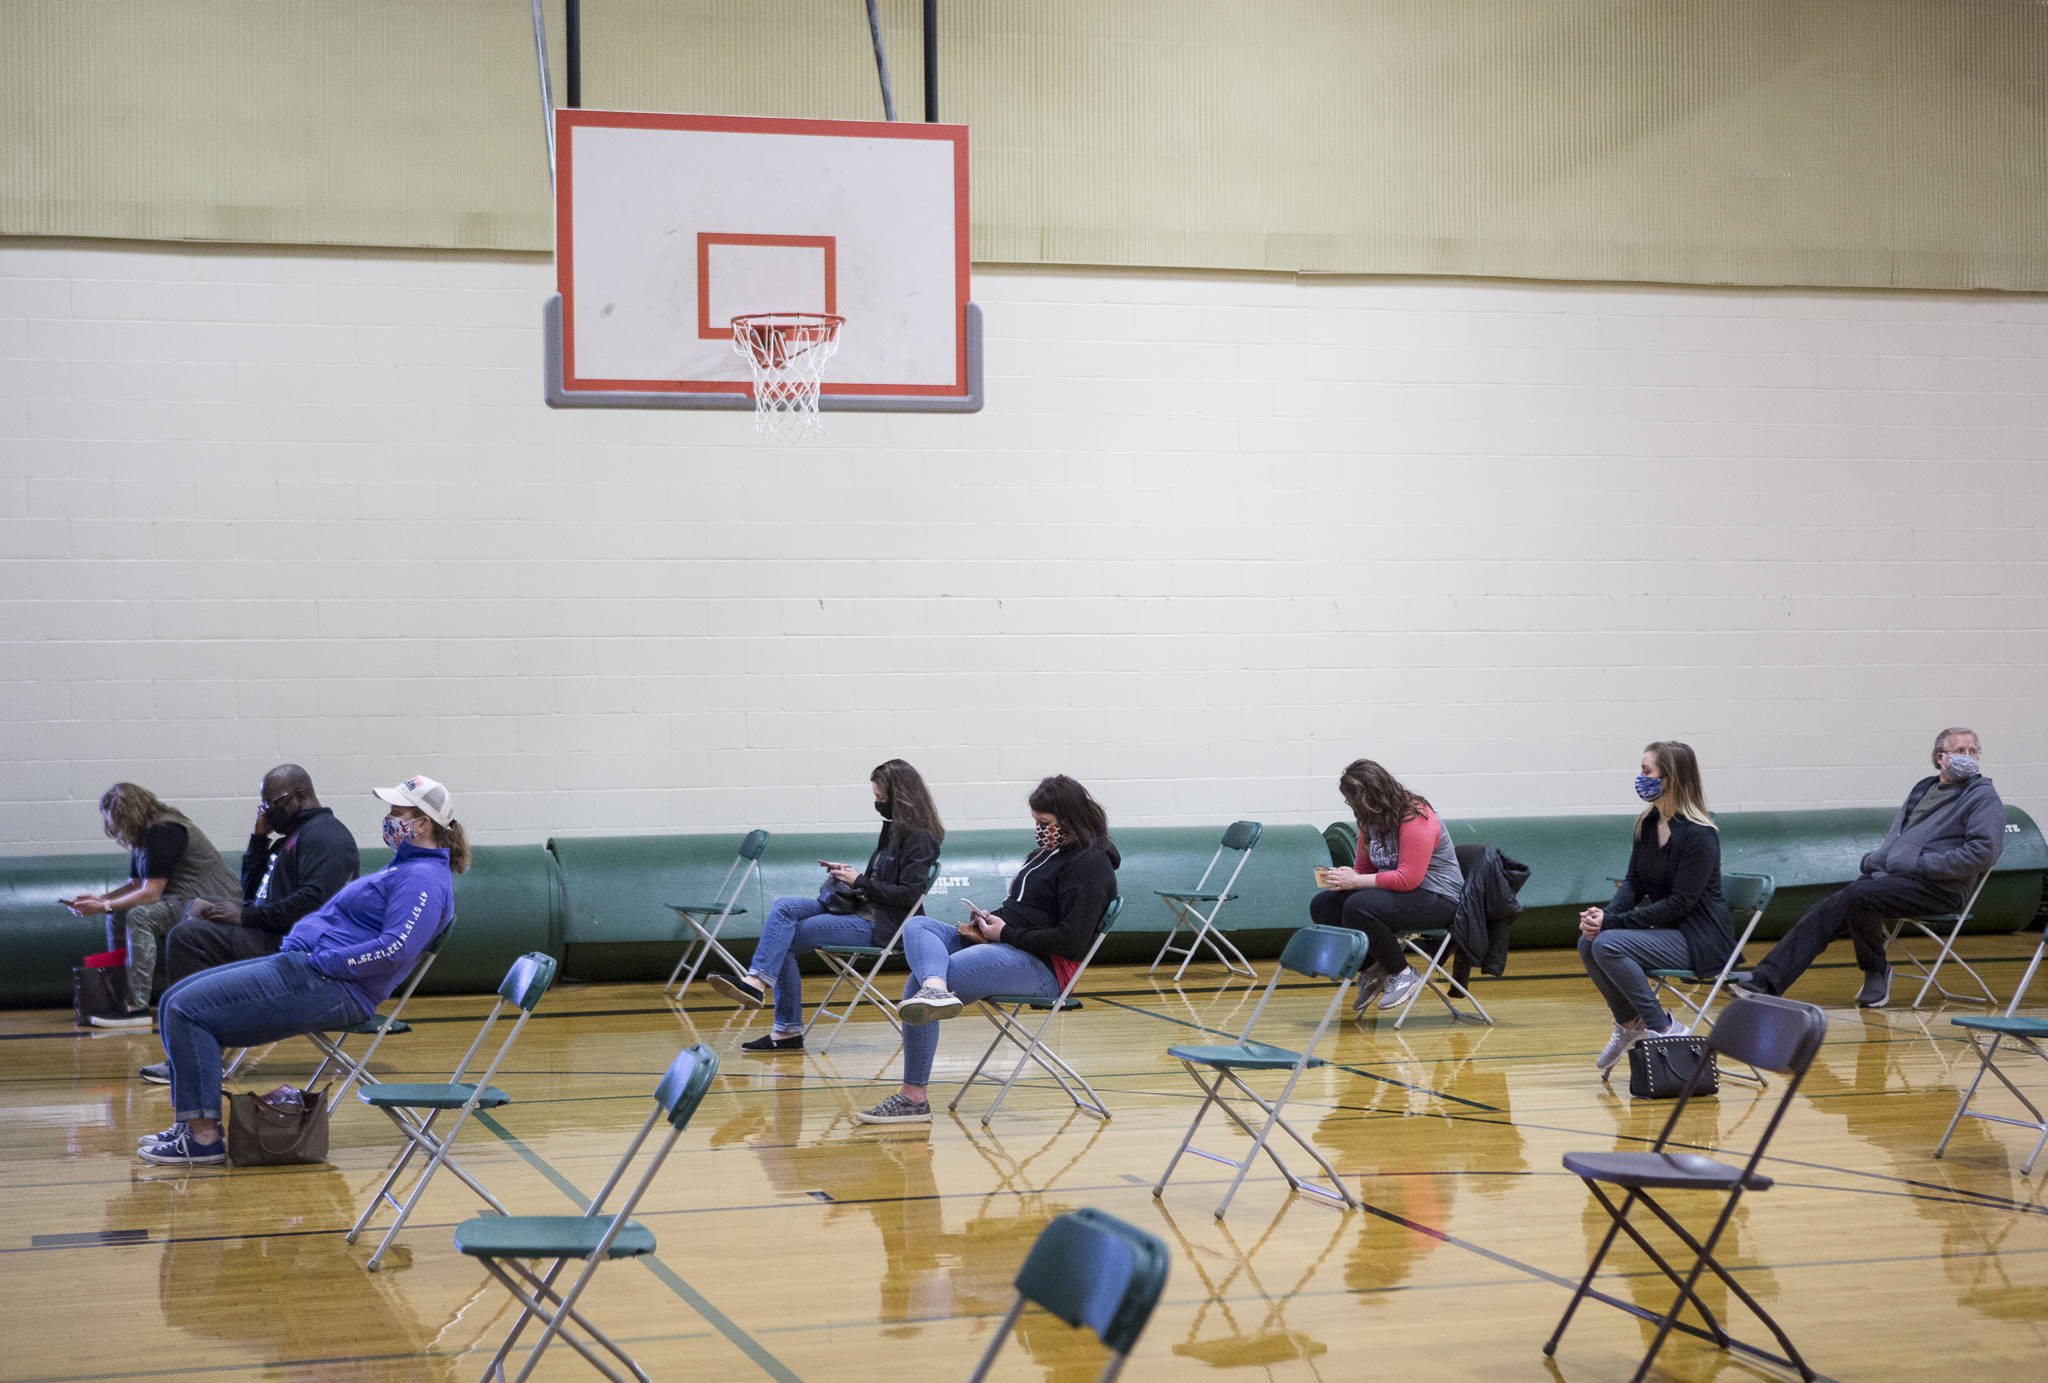 Everett School District teachers and staff wait in the Evergreen Middle School gym for 15 minutes after being vaccinated for COVID-19 on Saturday. (Olivia Vanni / The Herald)